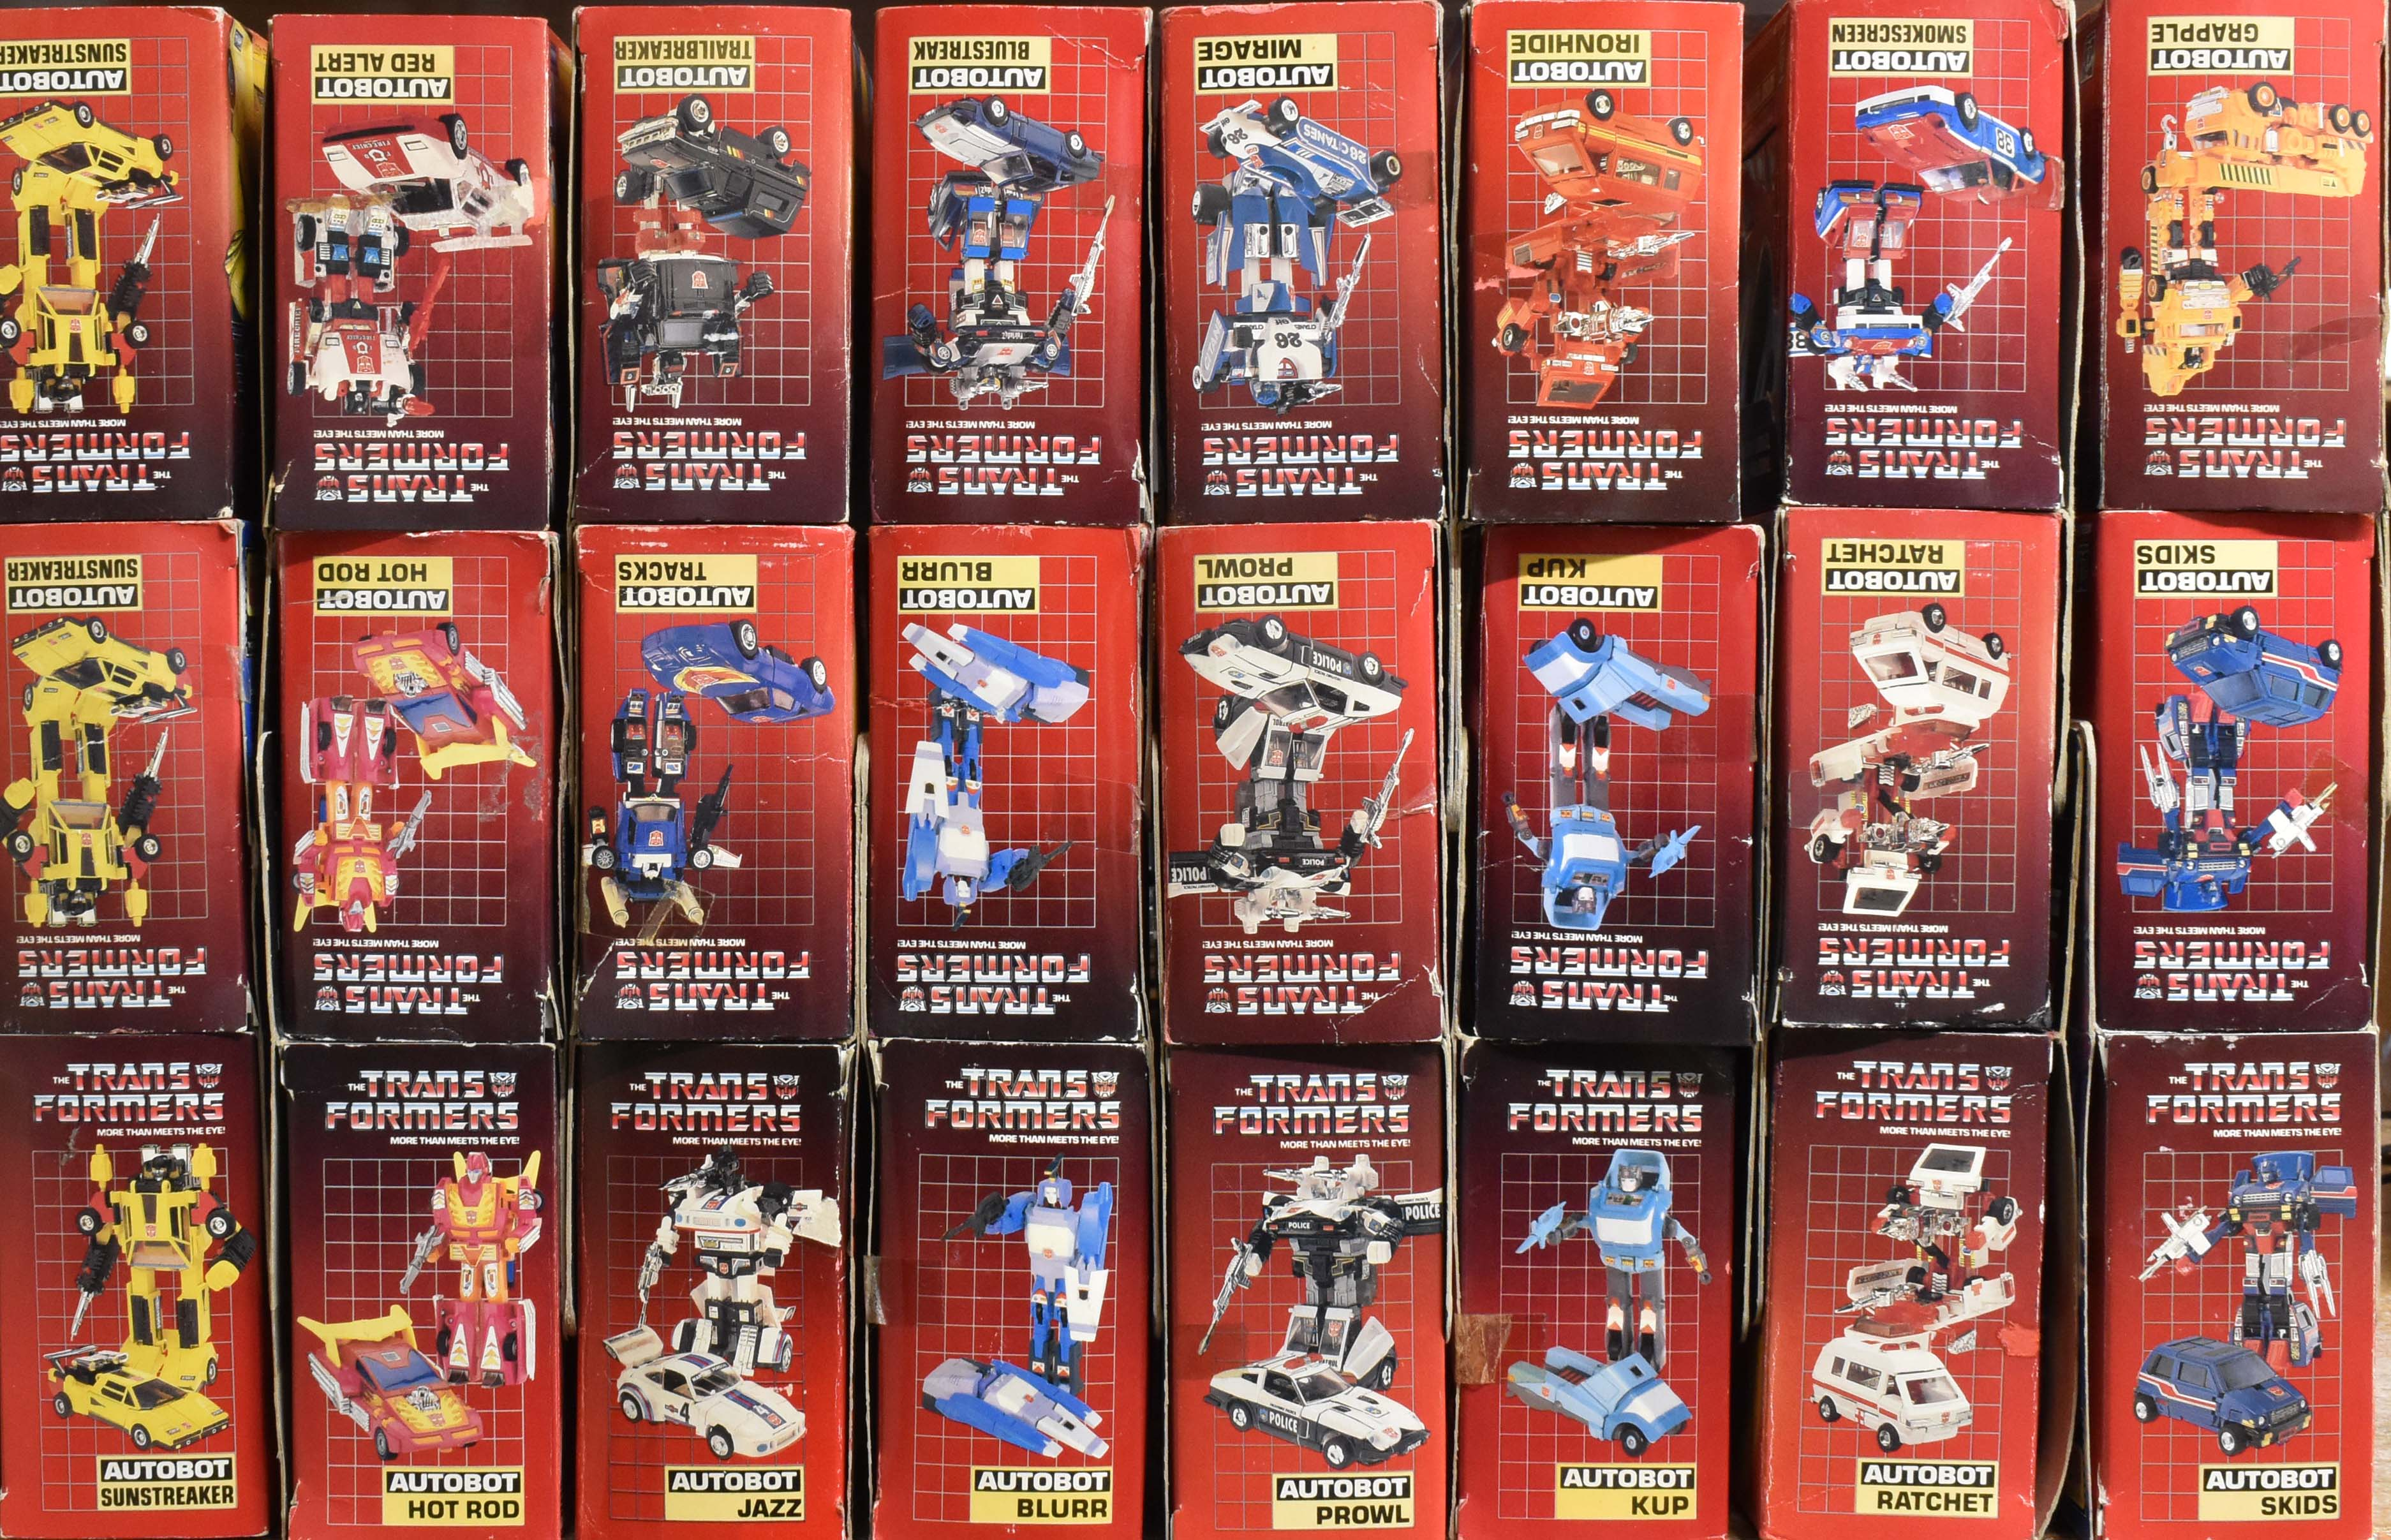 Where To Sell Transformers Toys and Get the Best Price for My Collection